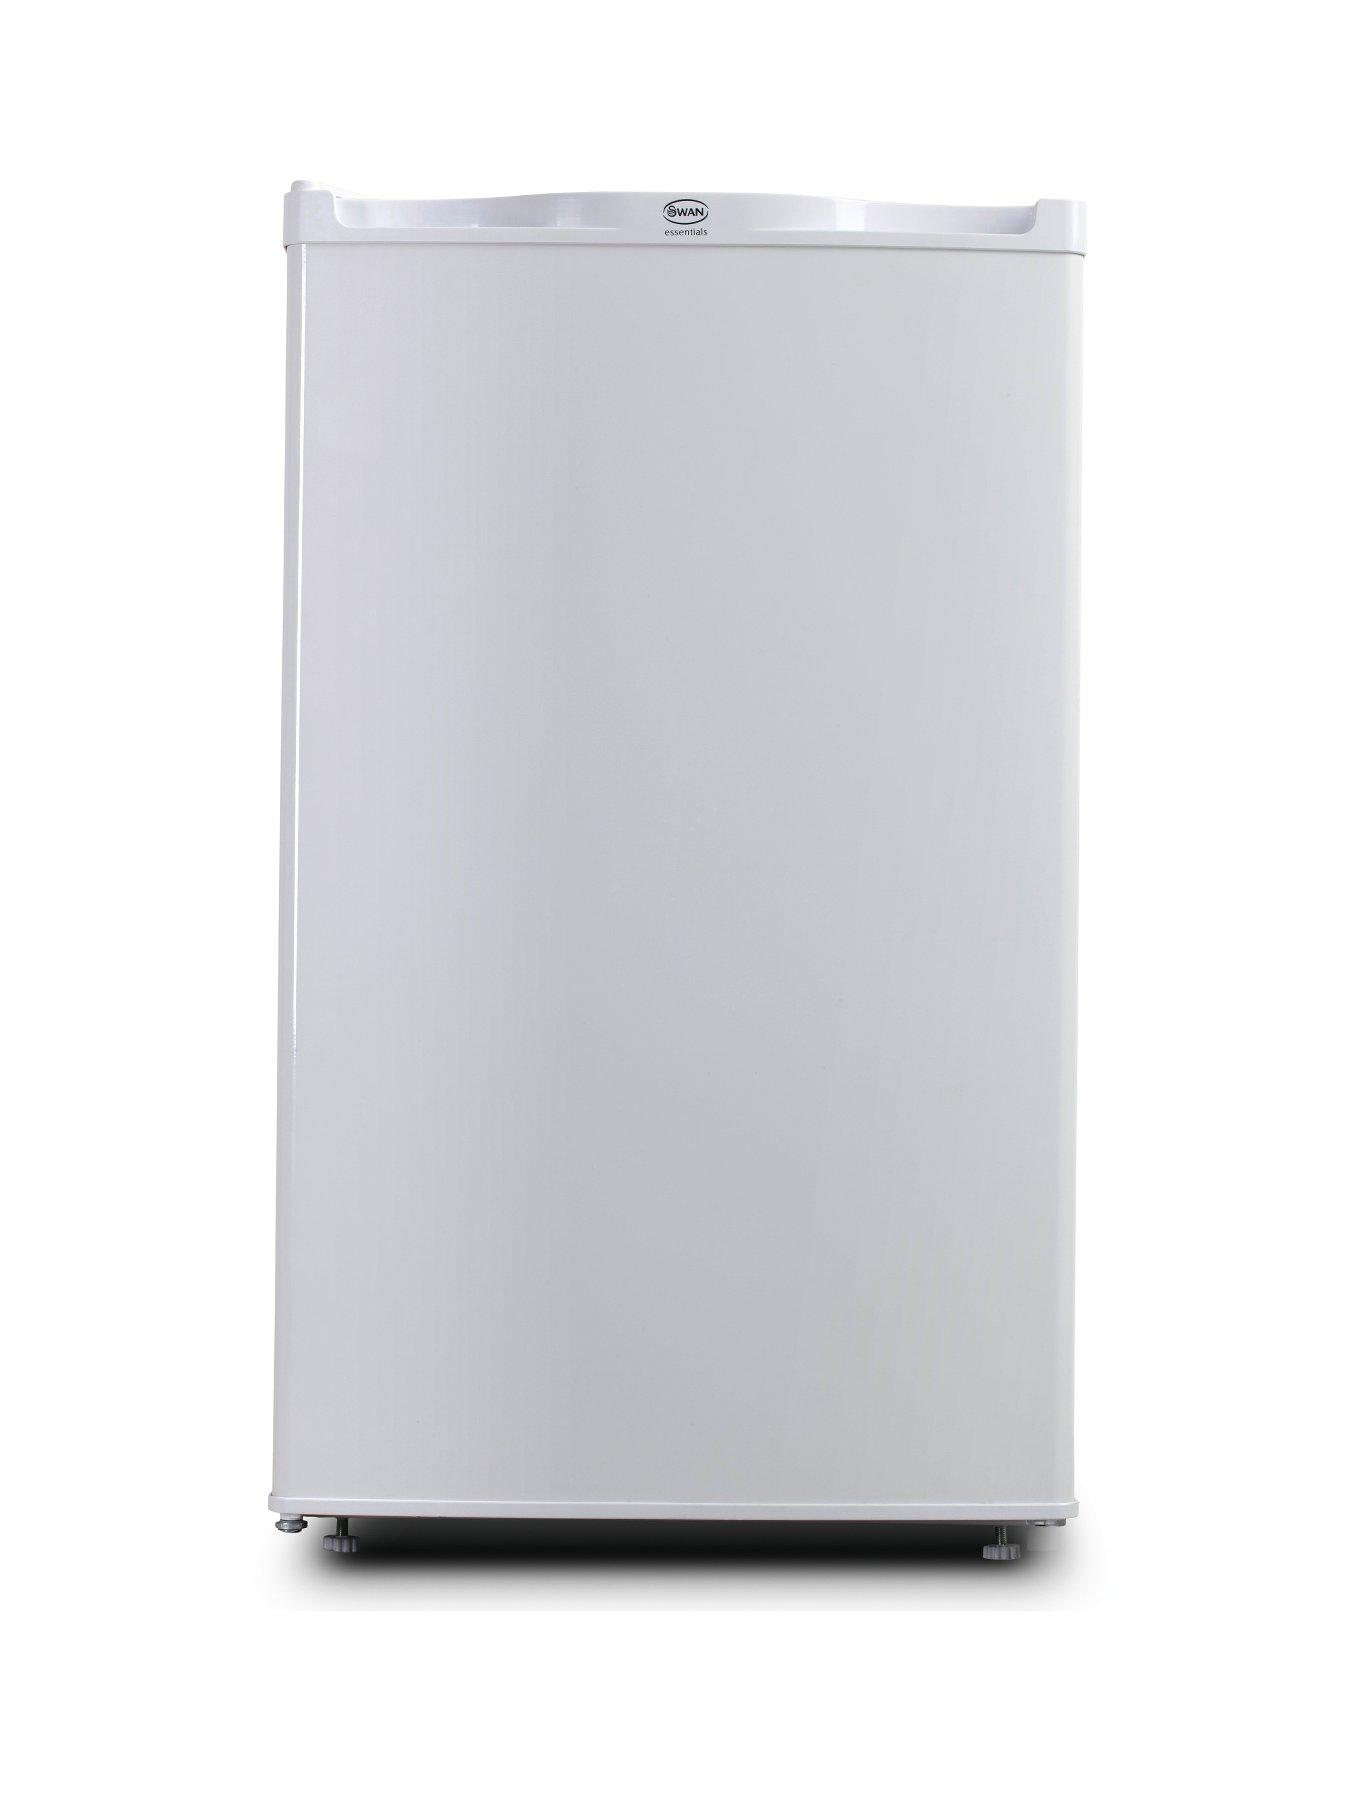 SER5280W 50cm Under-counter Larder Freezer - White